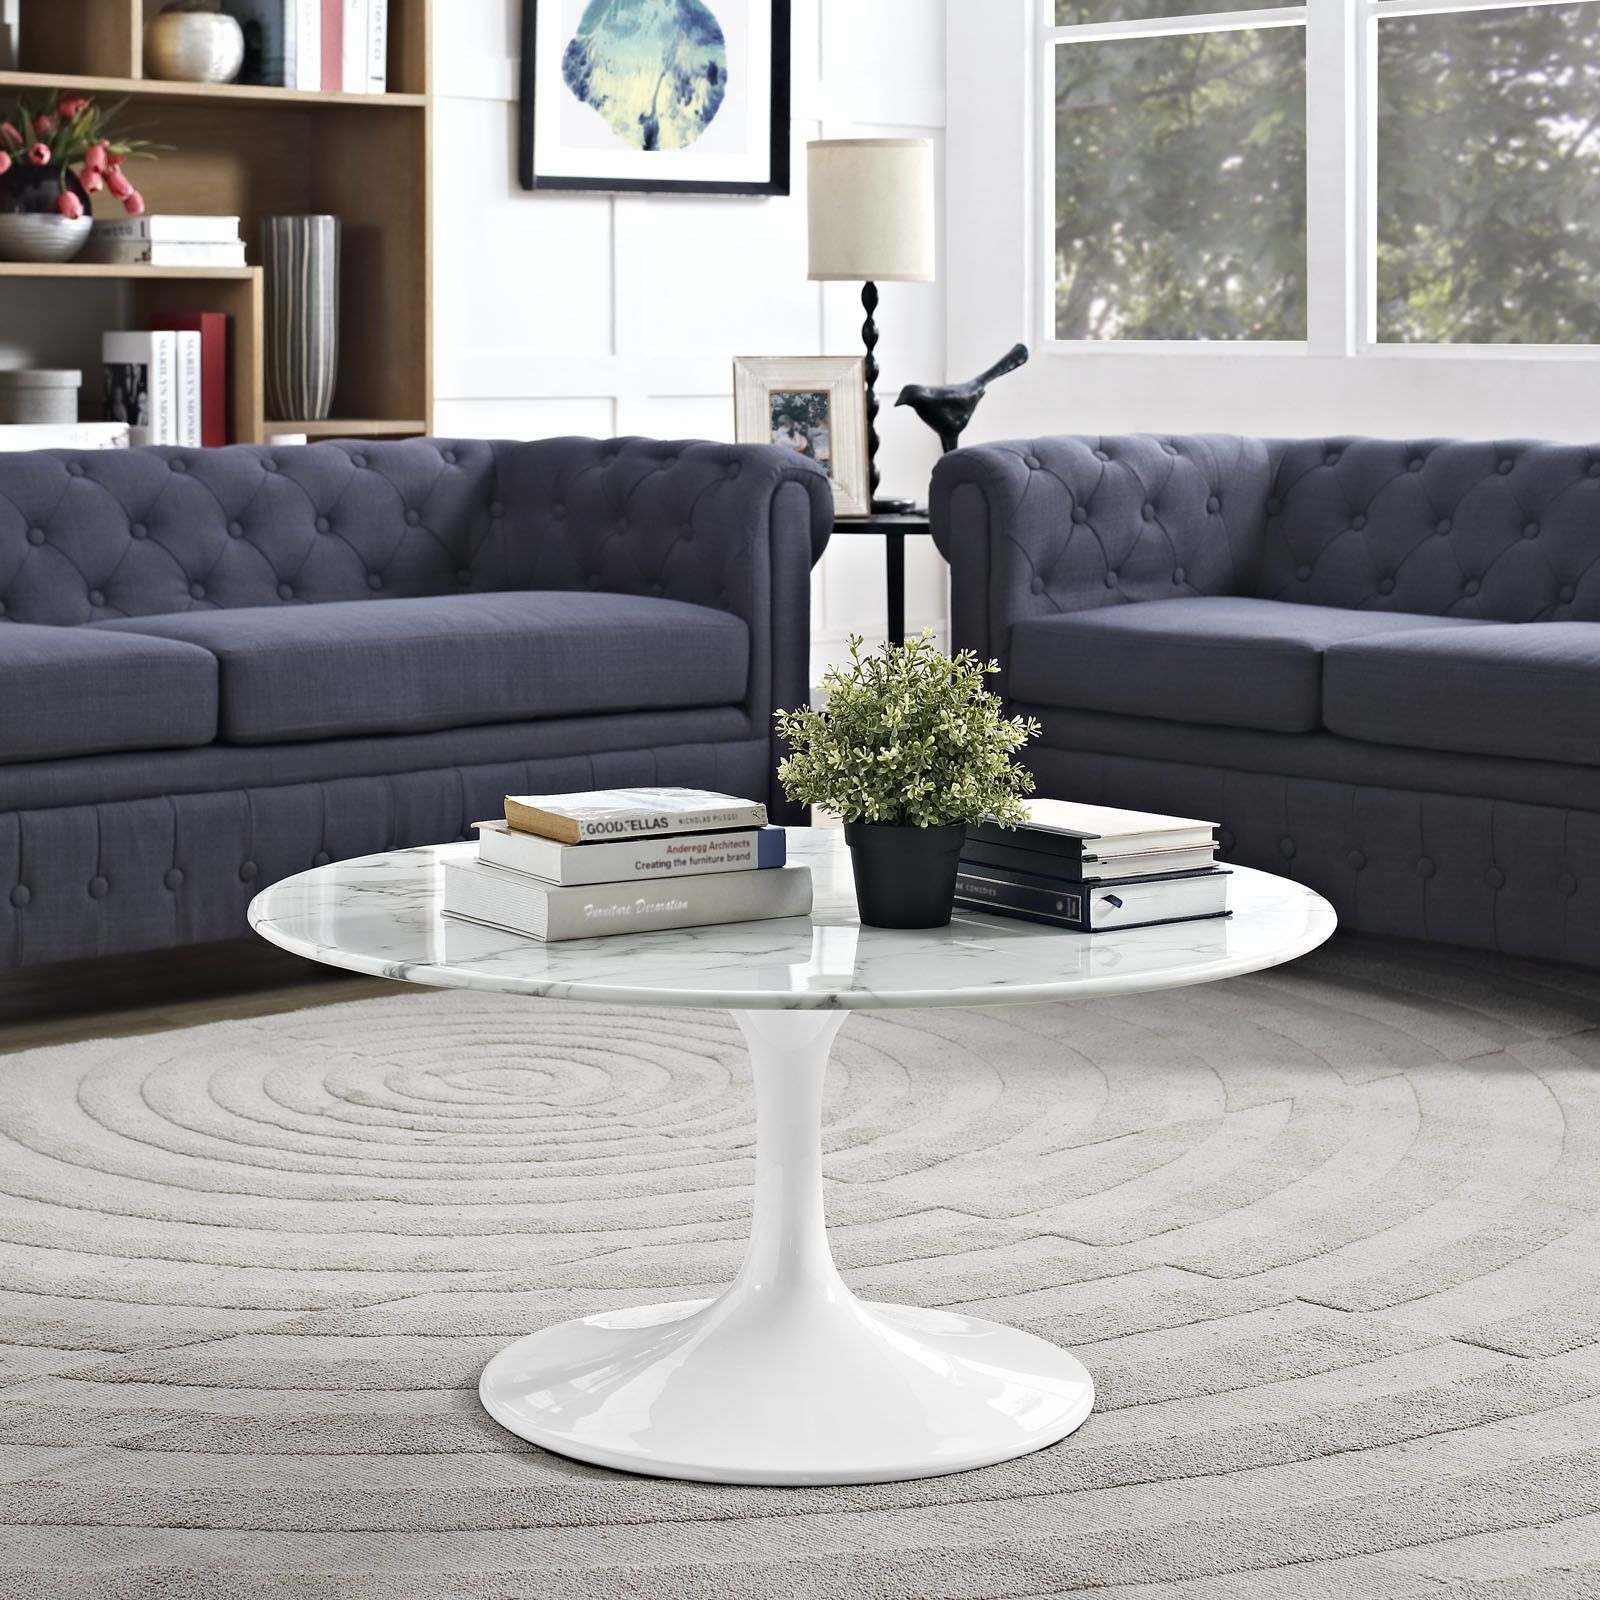 lippa 36 inch marble table overstock shopping great deals on